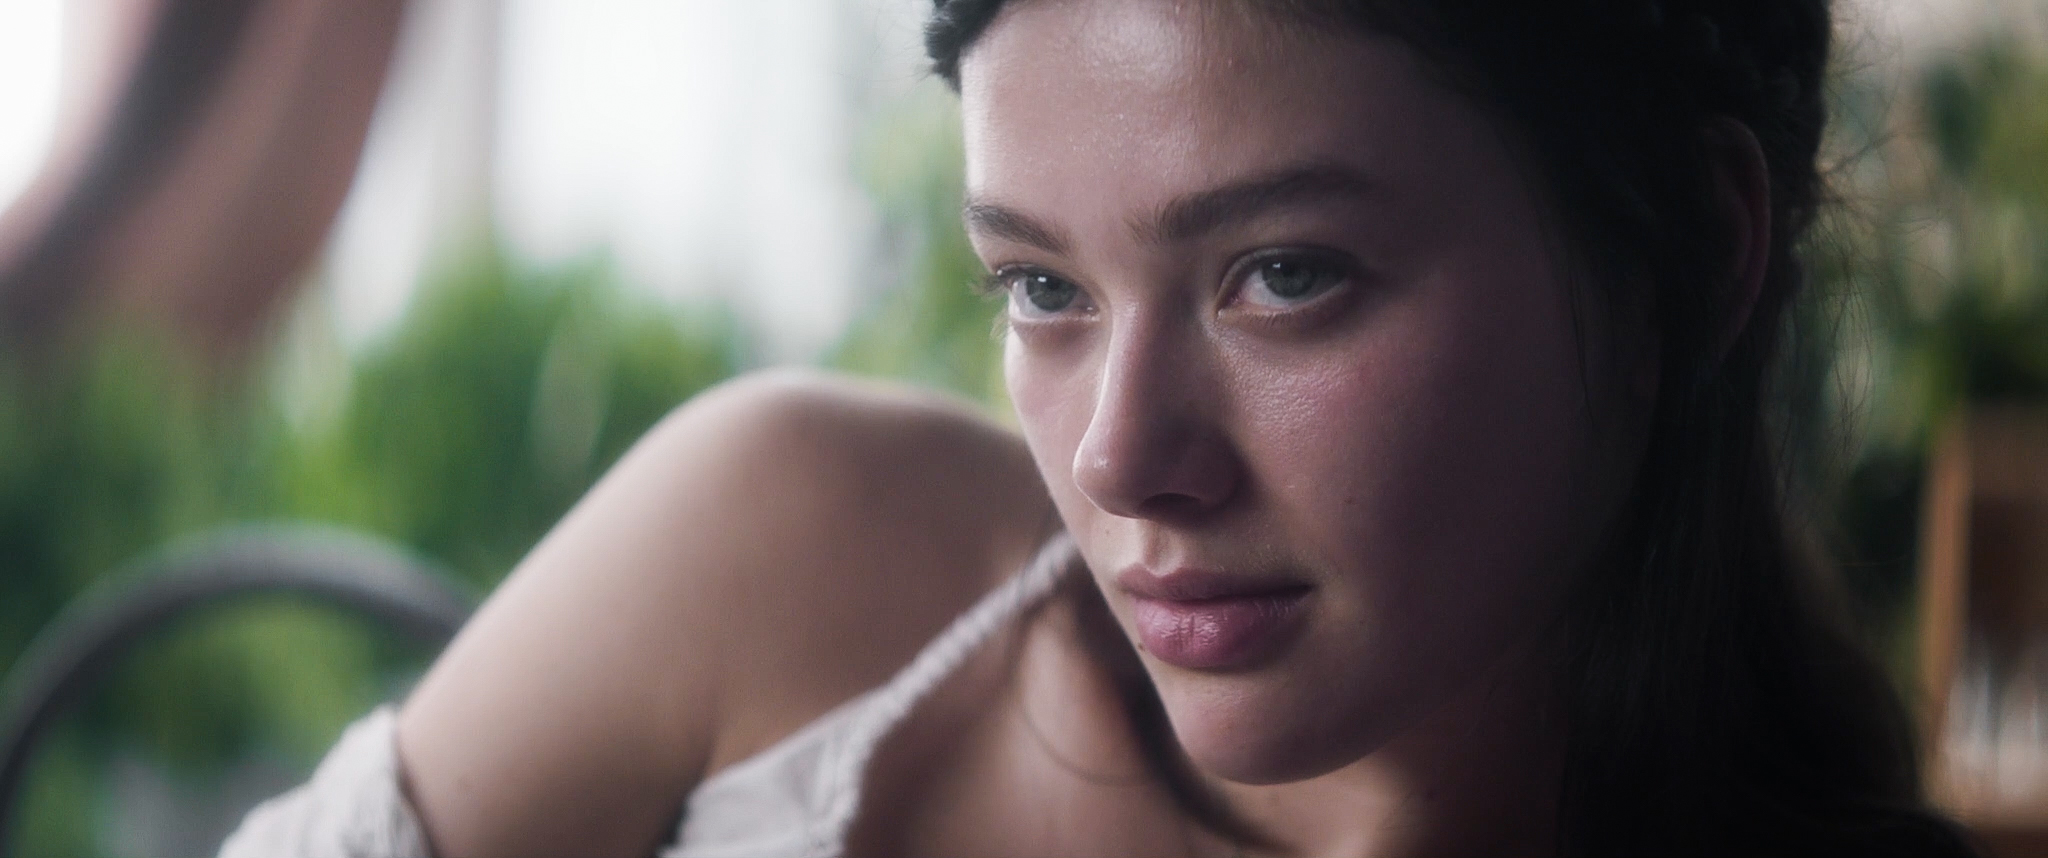 A young brunette woman seen from the shoulders up. Greenery is out of focus behind her, and she gazes at something off-screen.